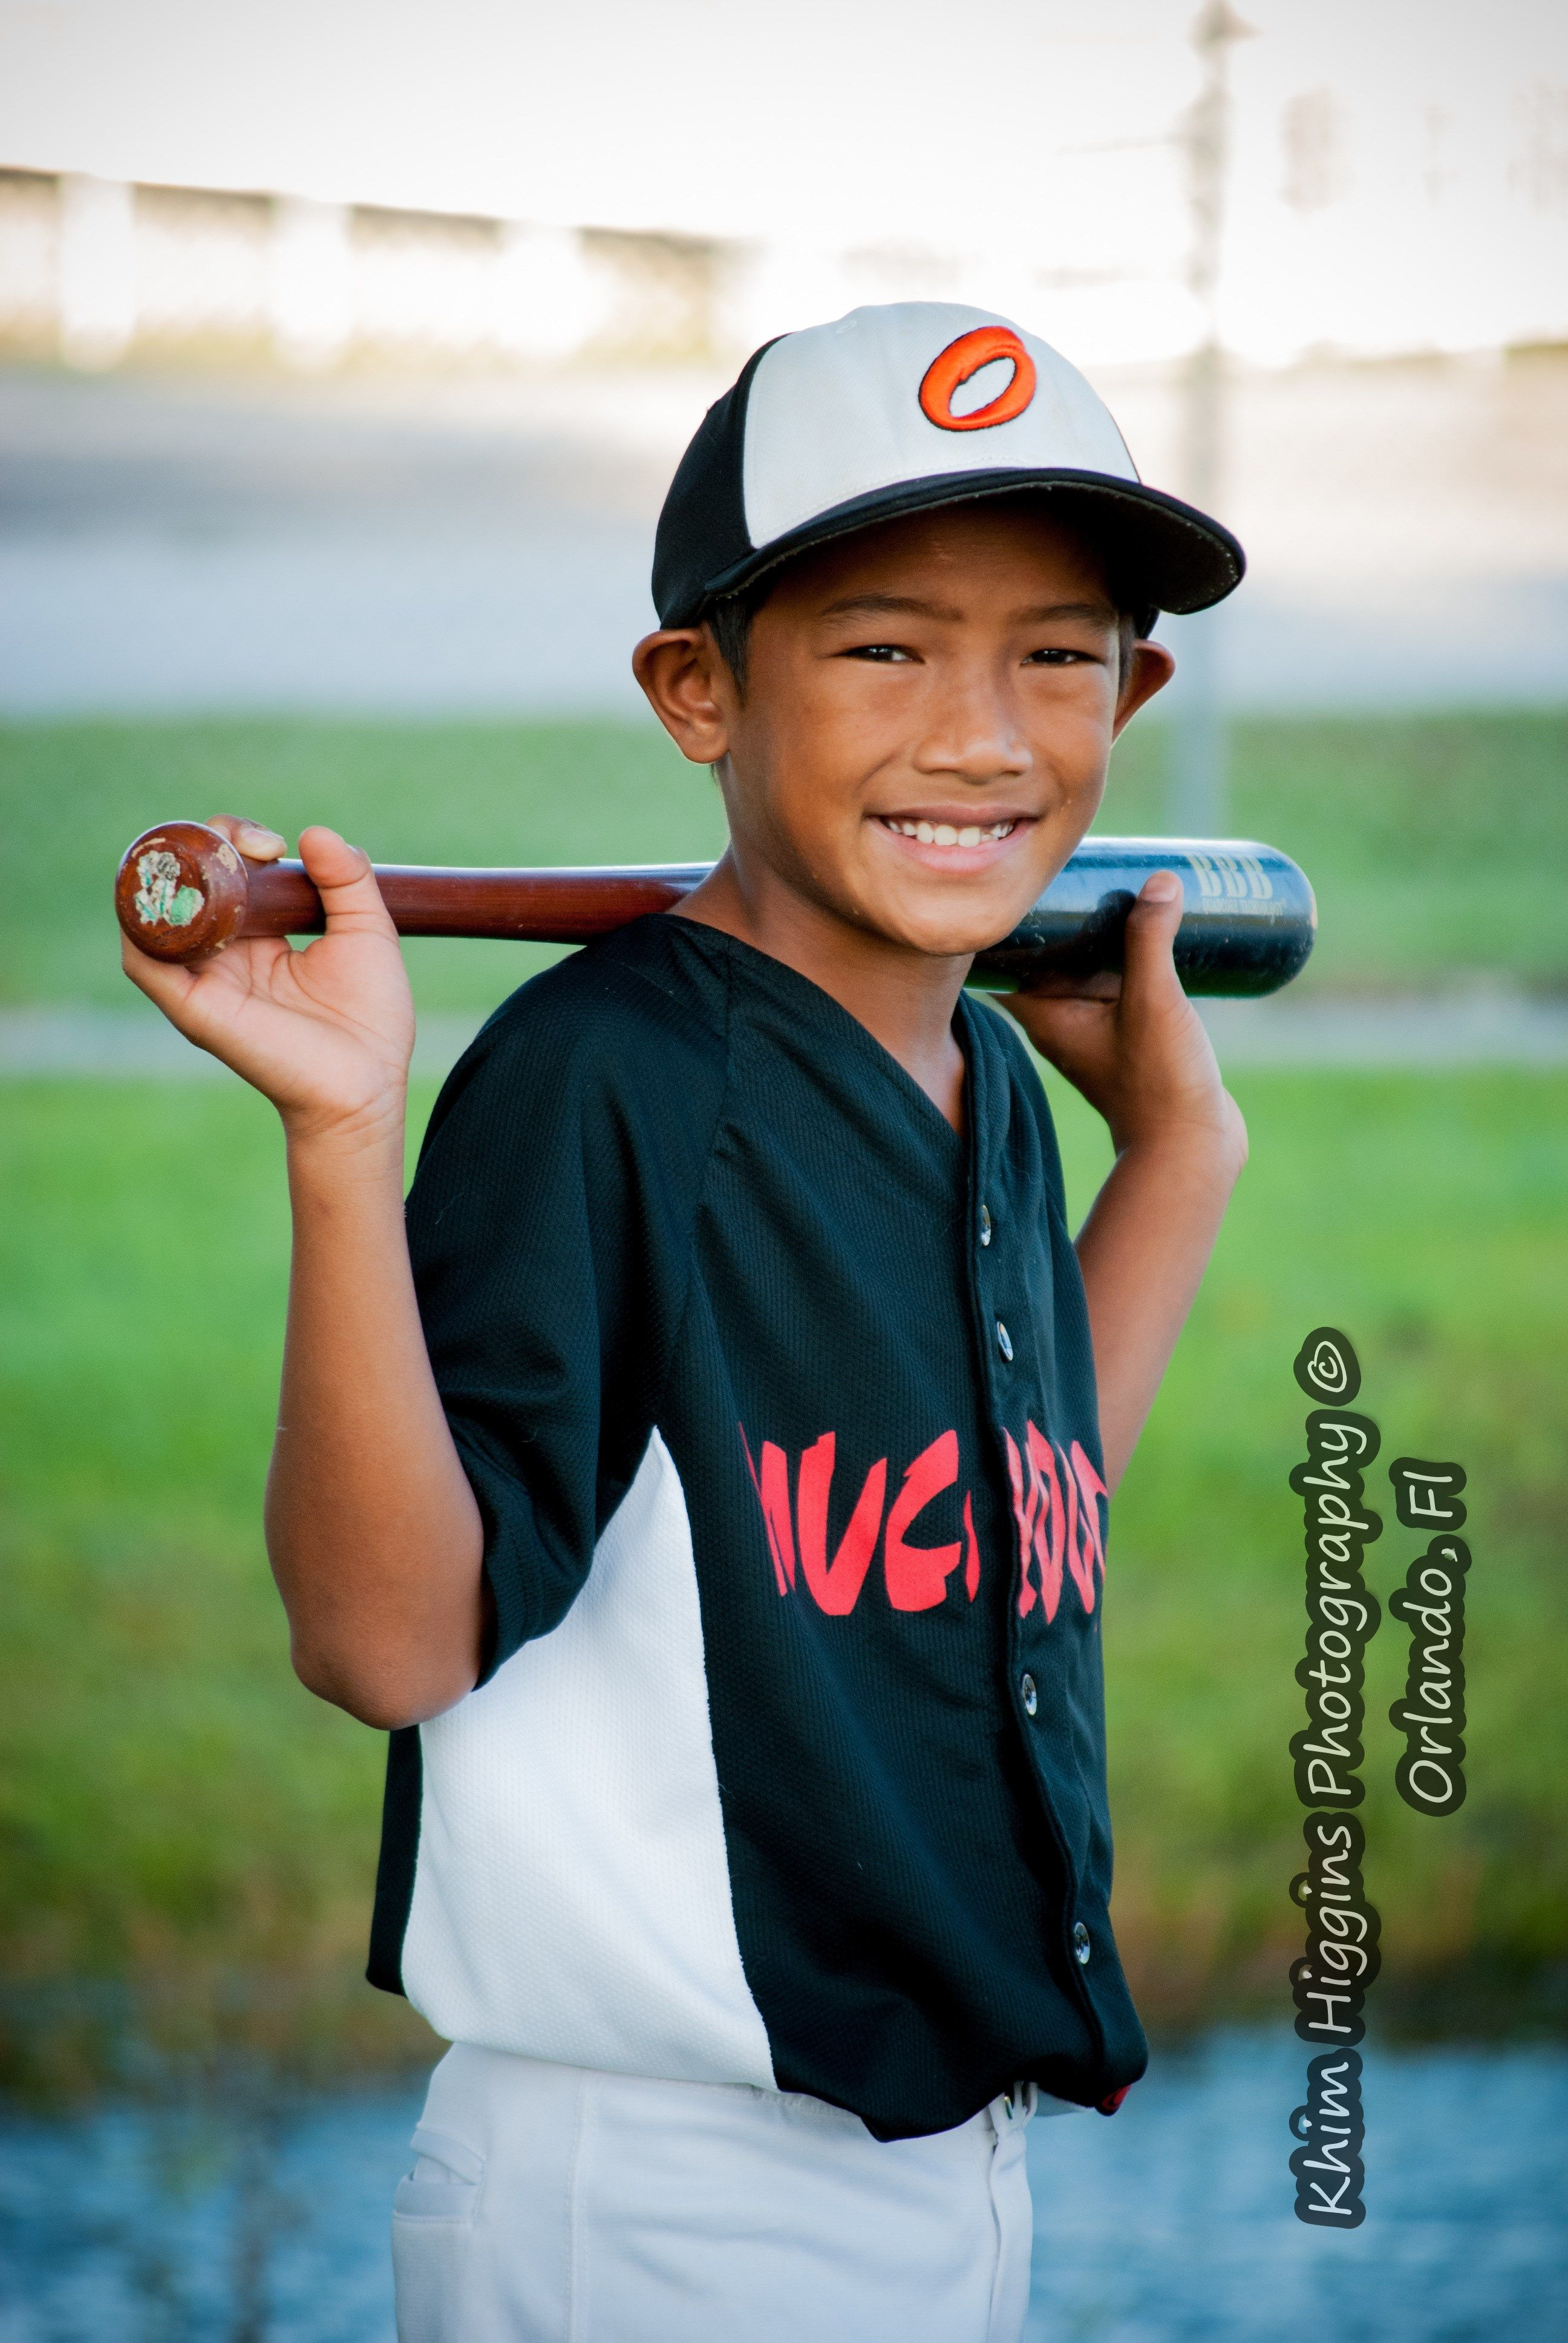 A Classic Baseball Pose By Khim Higgins Photography Orlando Fl